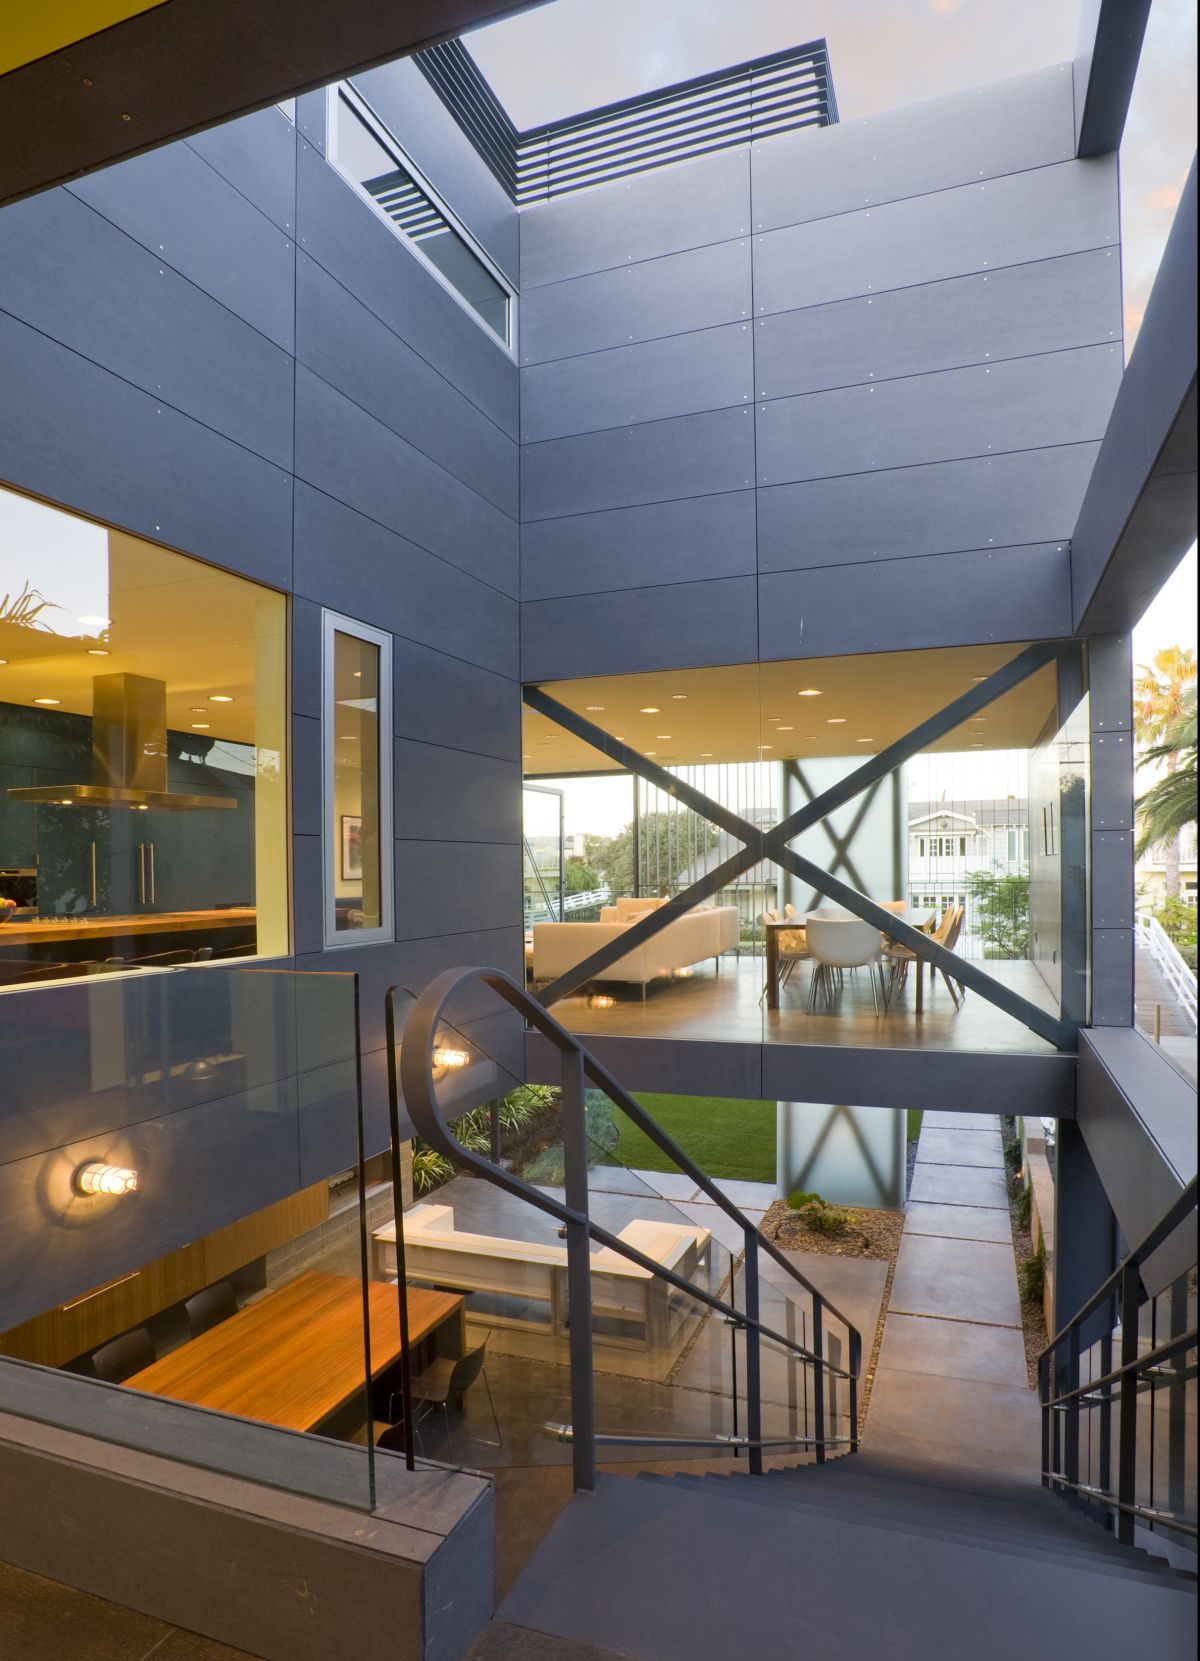 Stairs, Hover House 3, Los Angeles, California